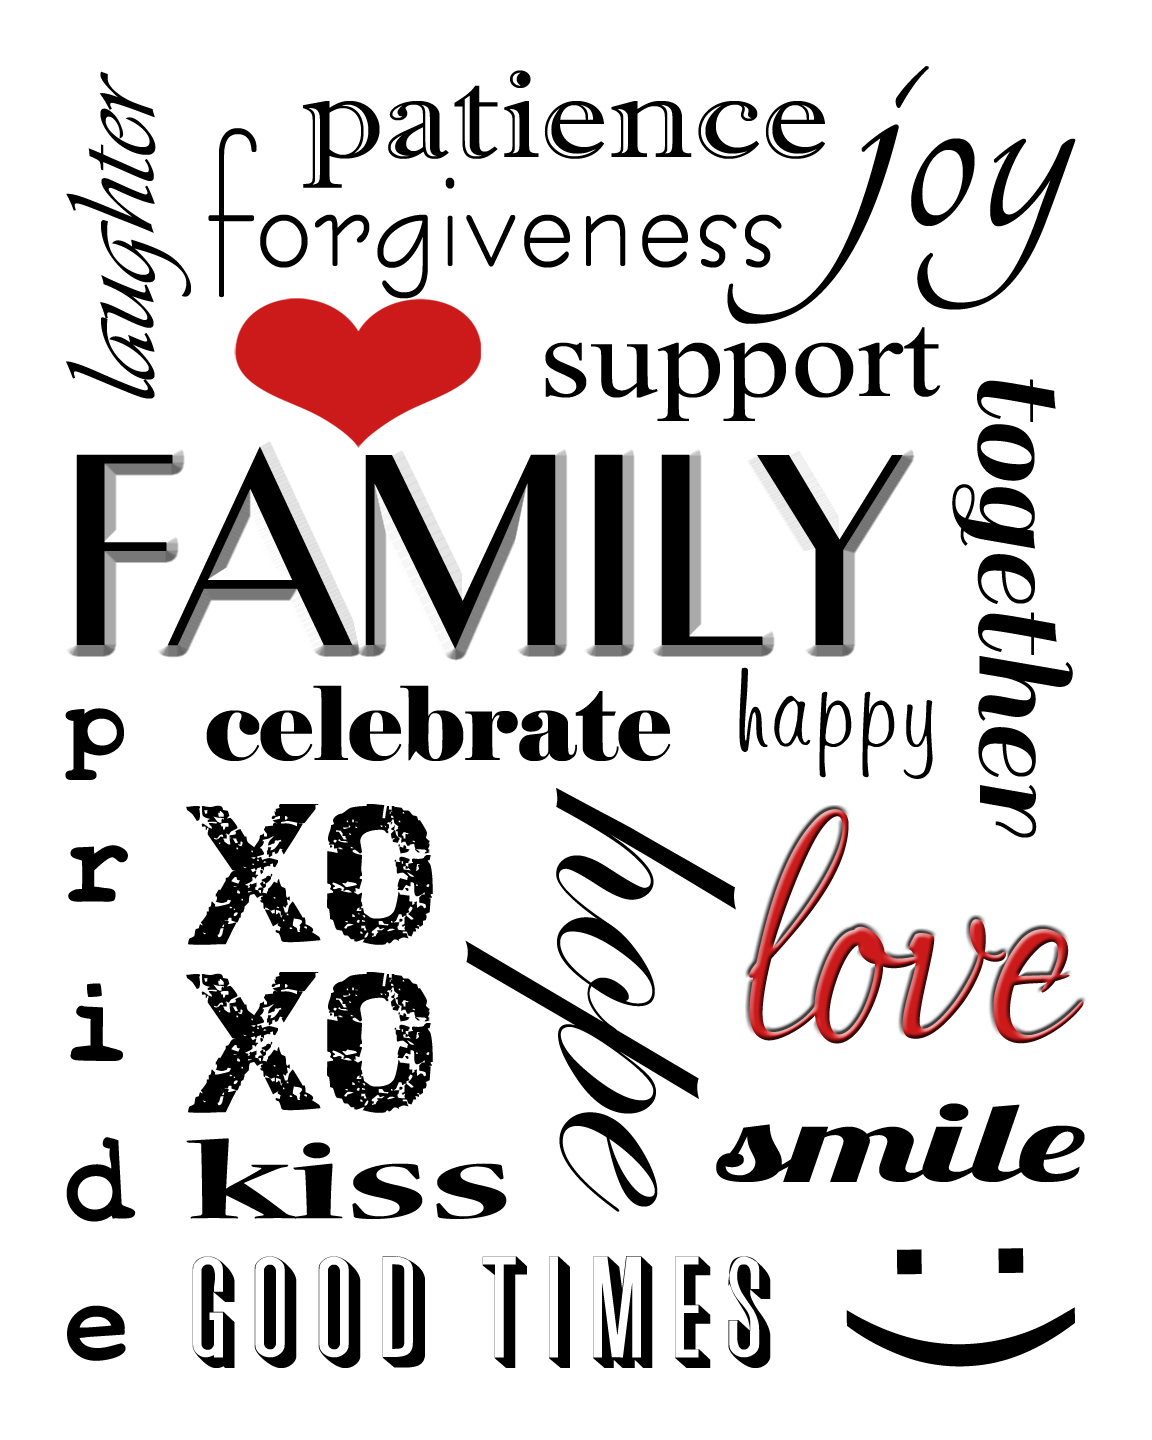 Winnerdogfinds free printable family subway art free printable family subway art pronofoot35fo Image collections